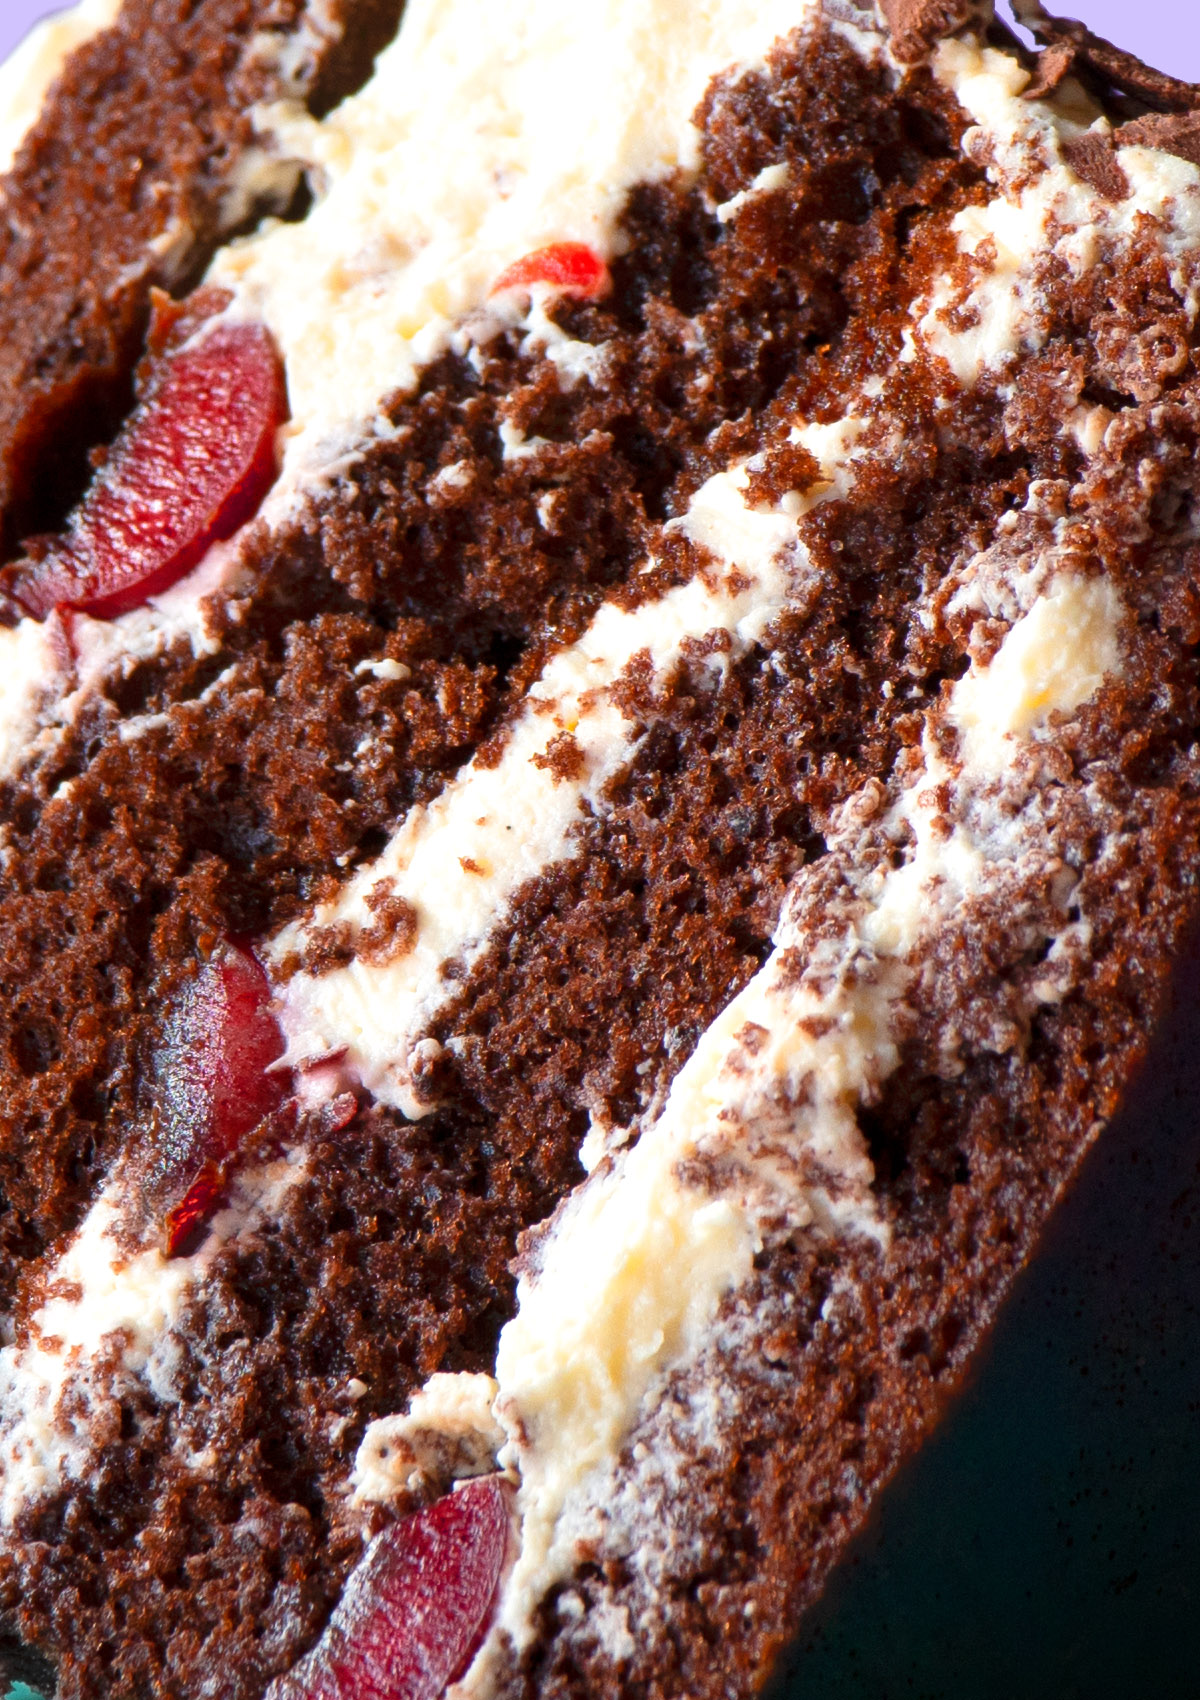 Extreme close up shot of a slice of black forest cake